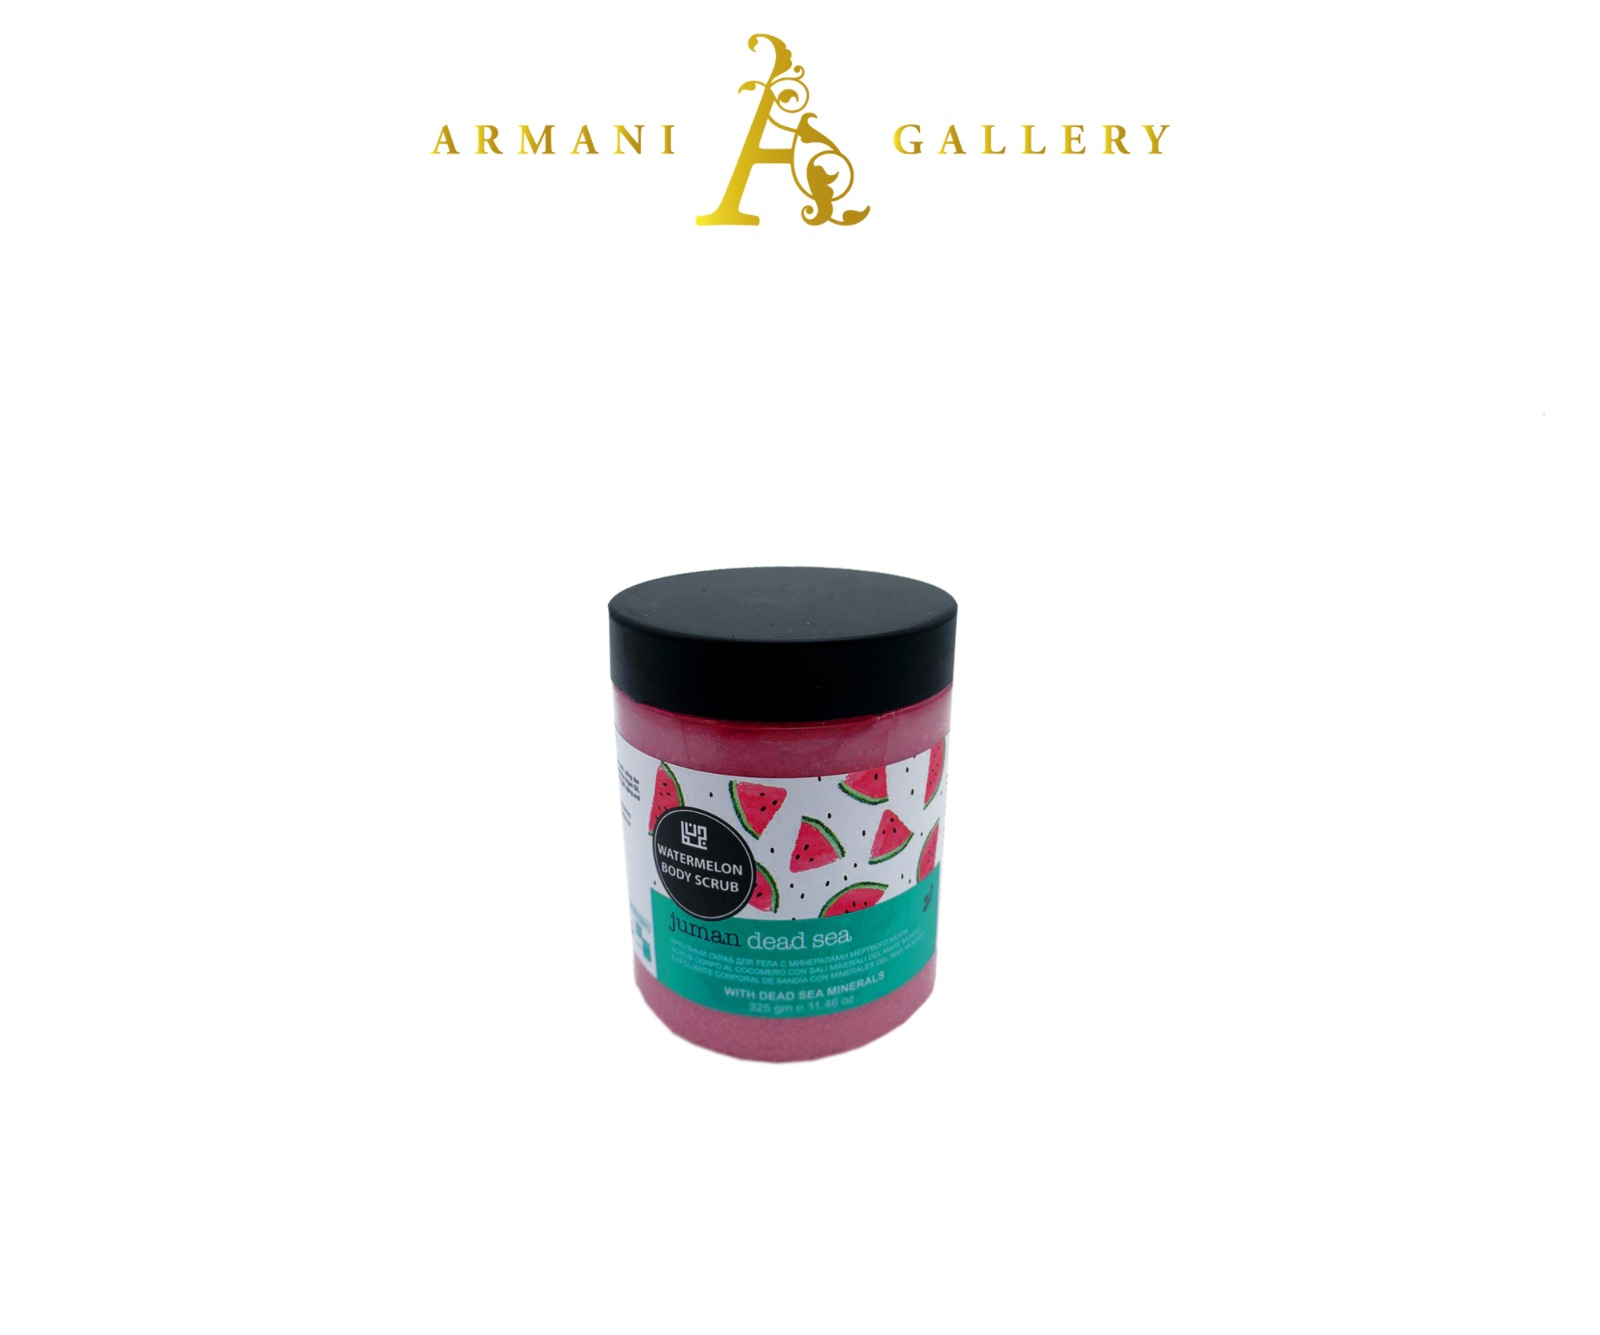 Buy Watermelon Body Scrub with Dead Sea Minerals